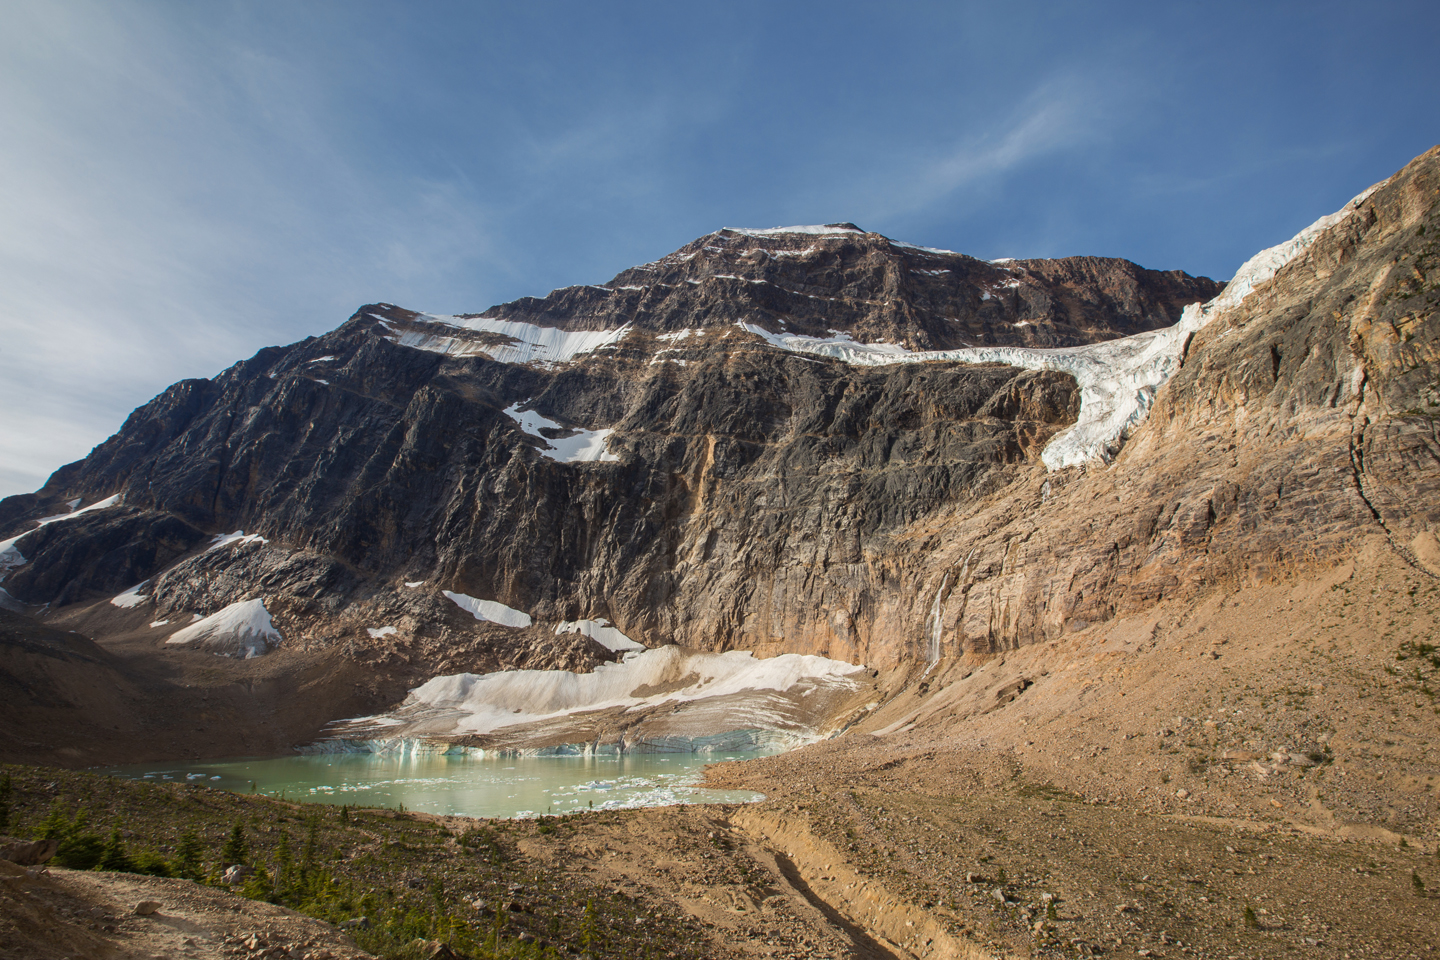 Mt. Edith Cavell Hike